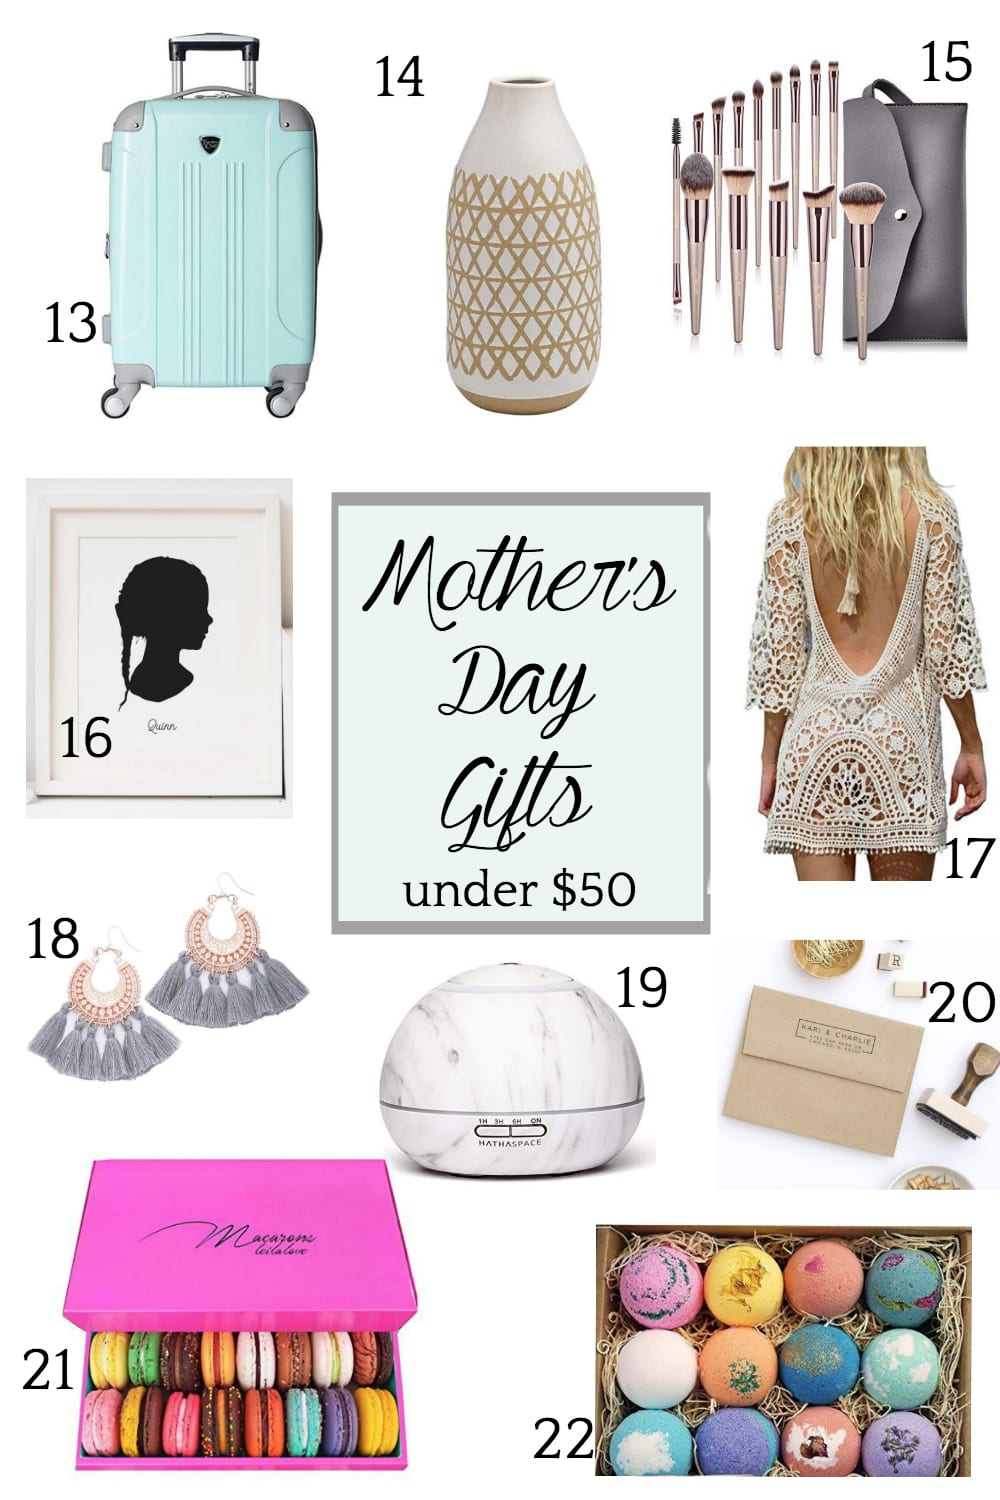 Mother's Day Gifts Under $50 | blesserhouse.com - 22 Mother's Day gifts full of sentimental meaning, luxurious pampering, and special treats for a bargain. #mothersdaygifts #mothersdaygiftguide